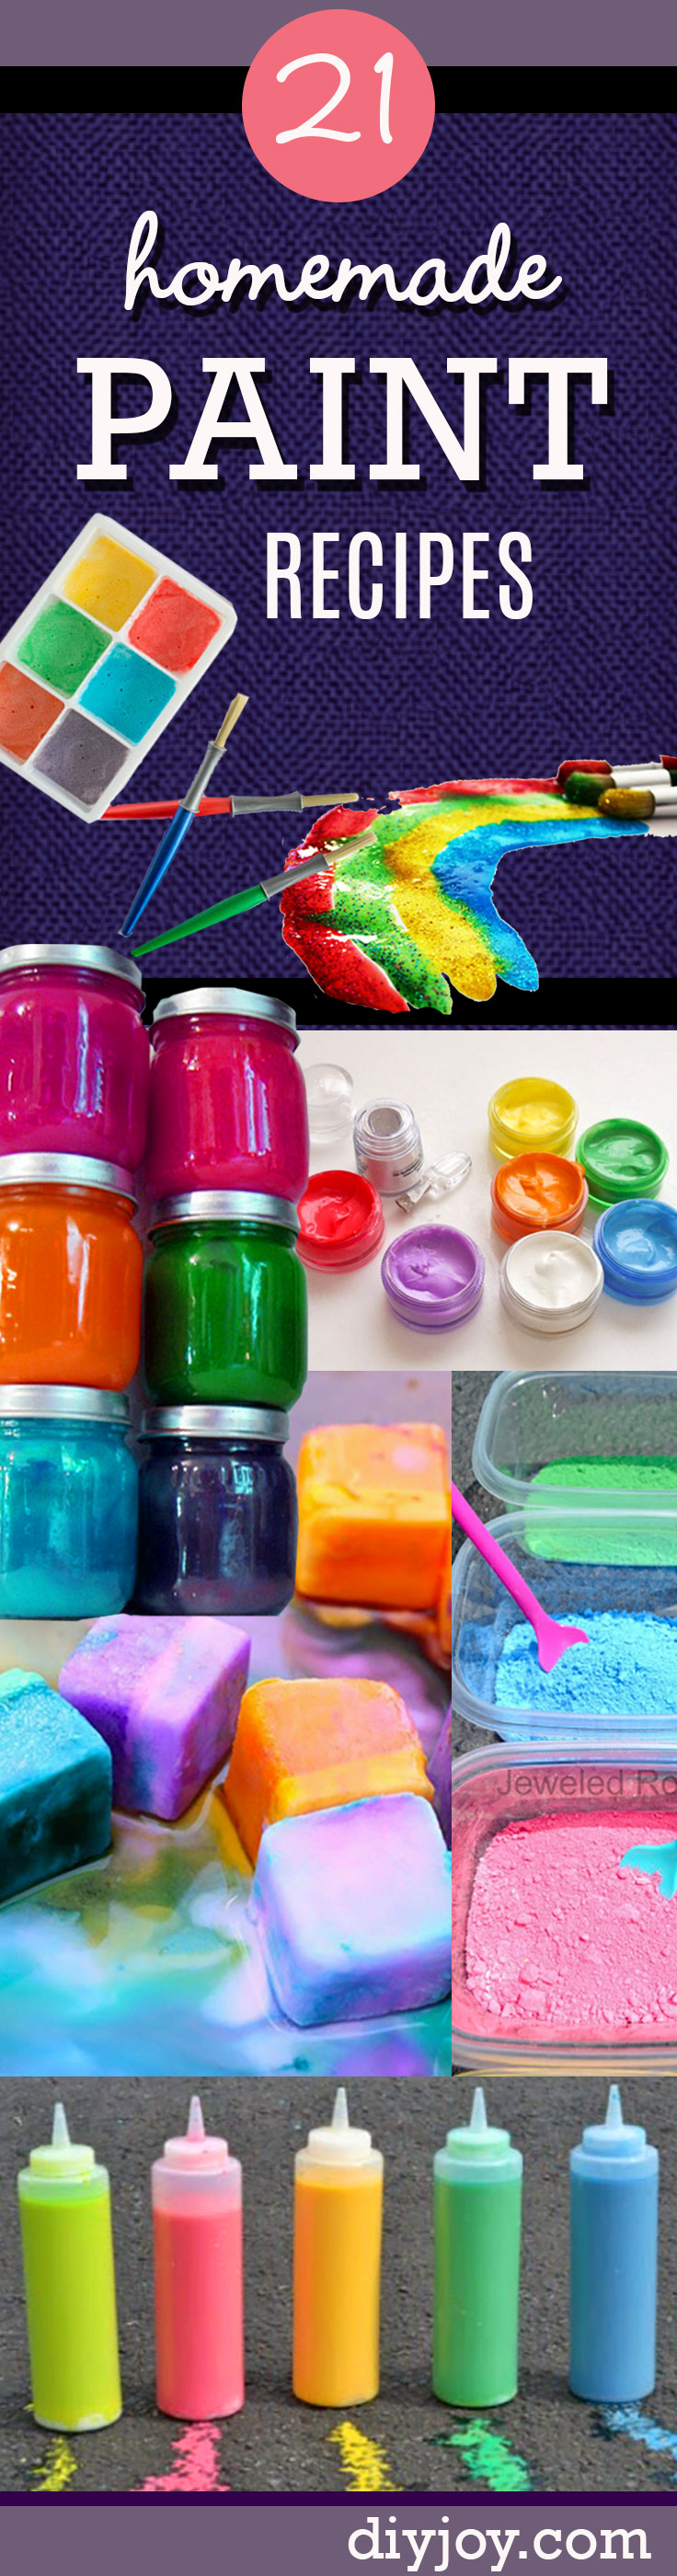 21 easy diy paint recipes your kids will go crazy for for Awesome crafts to do at home